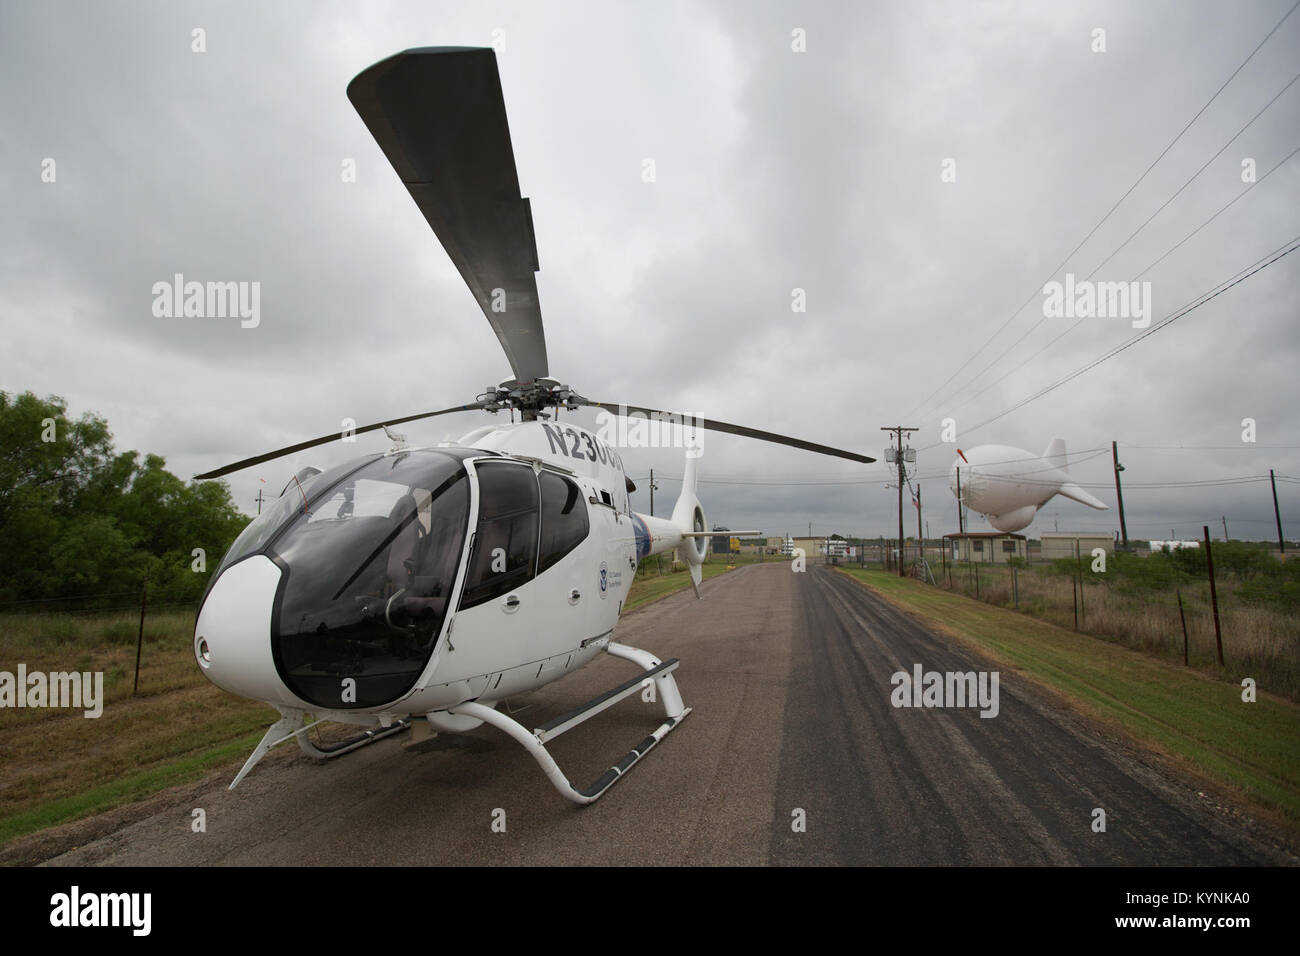 Eagle Pass, TX - An EC-120 helicopter outside the gate of an aerostat site in Eagle Pass, TX.  The Tethered Aerostat Stock Photo